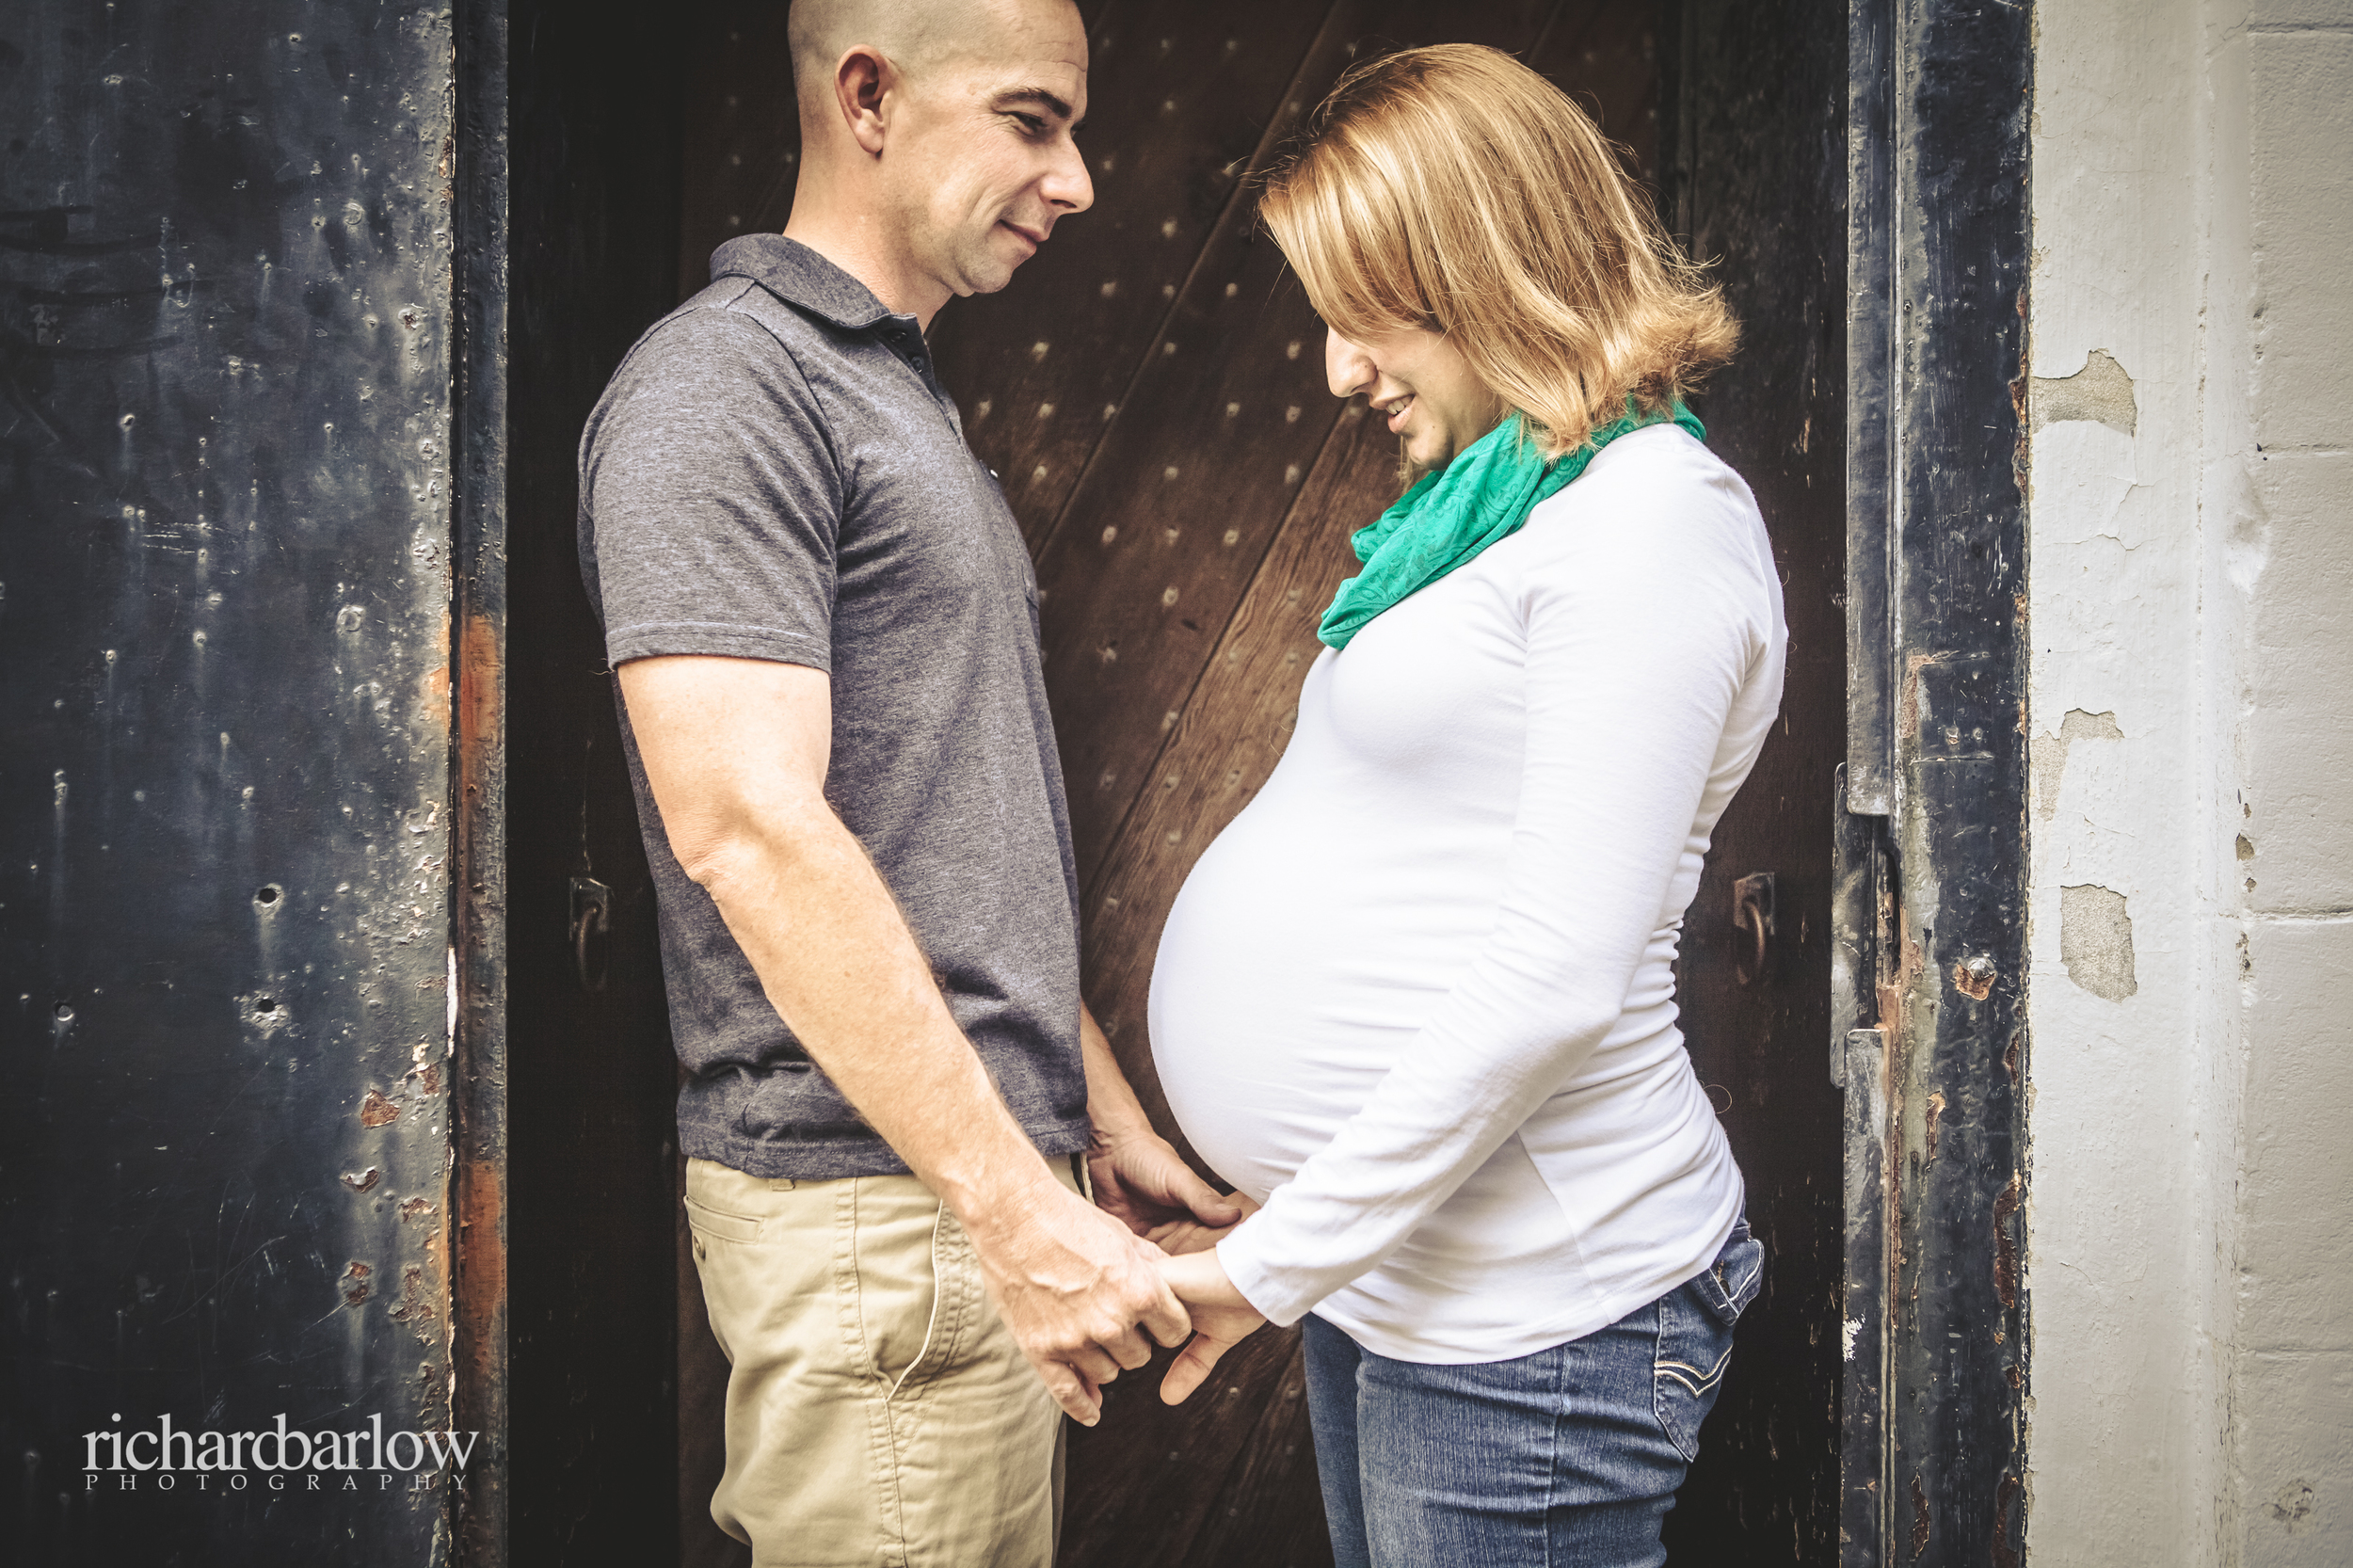 richard barlow photography - Sarah Maternity Session - Beaufort waterfront-6.jpg